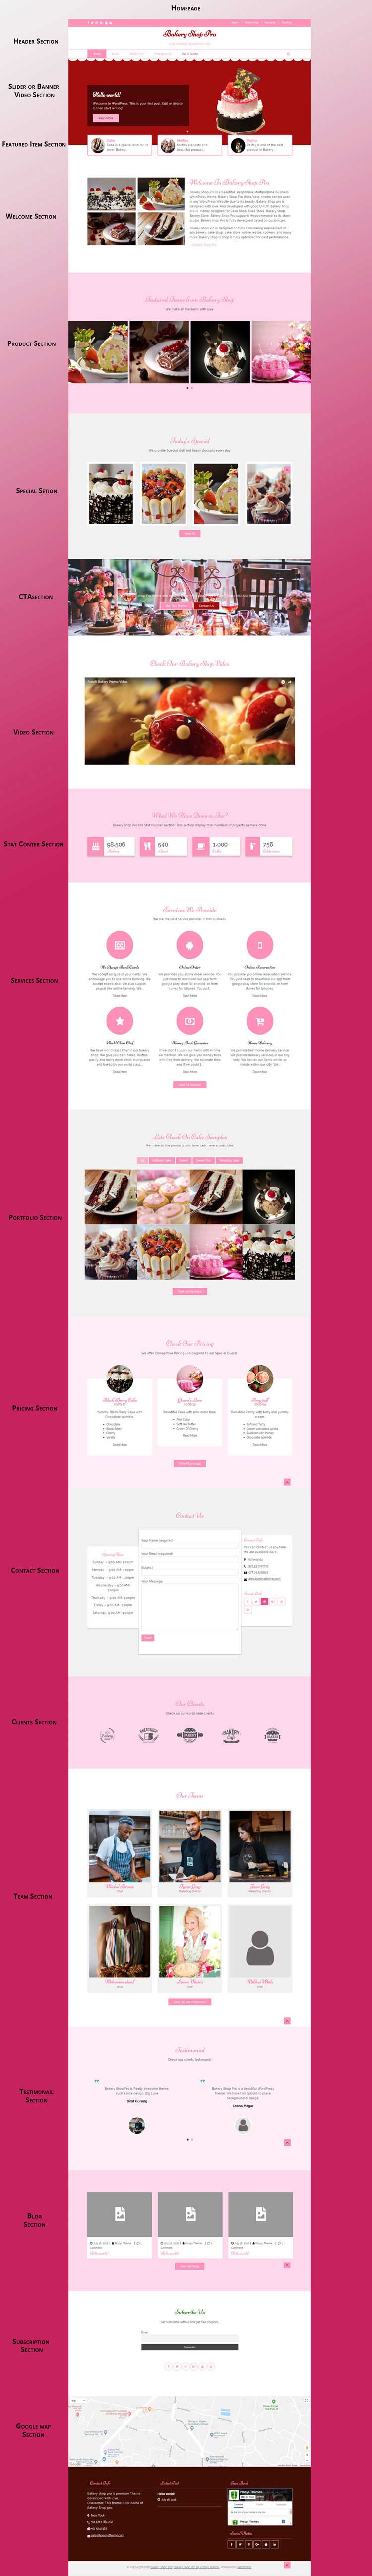 Bakery Shop Pro homepage